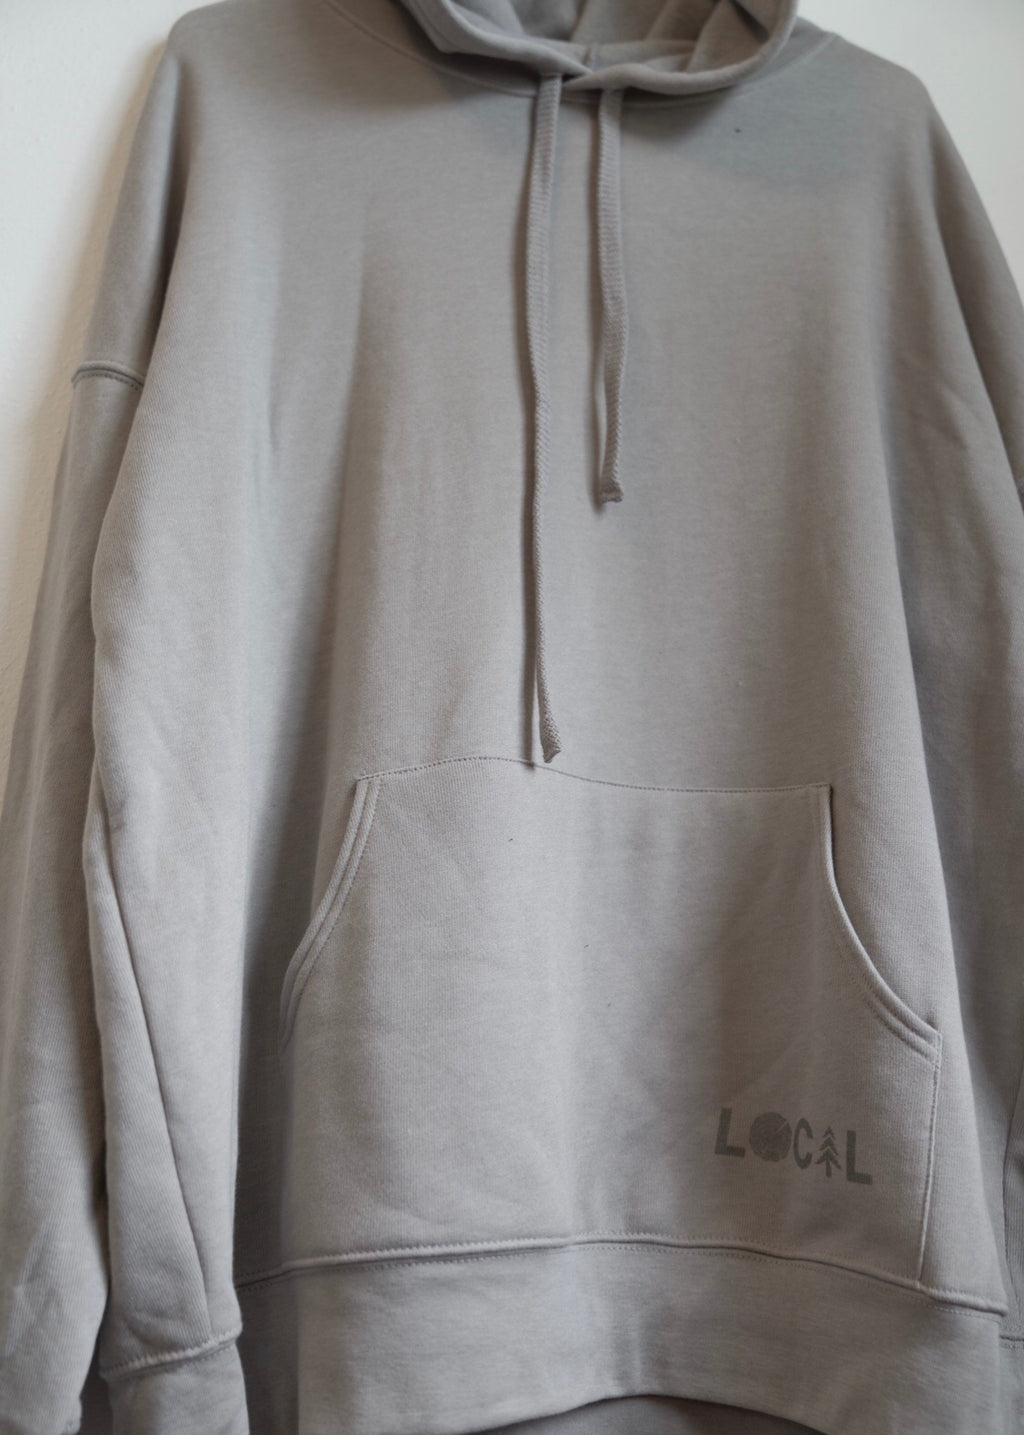 LOCAL Hoodie - Heather Stone